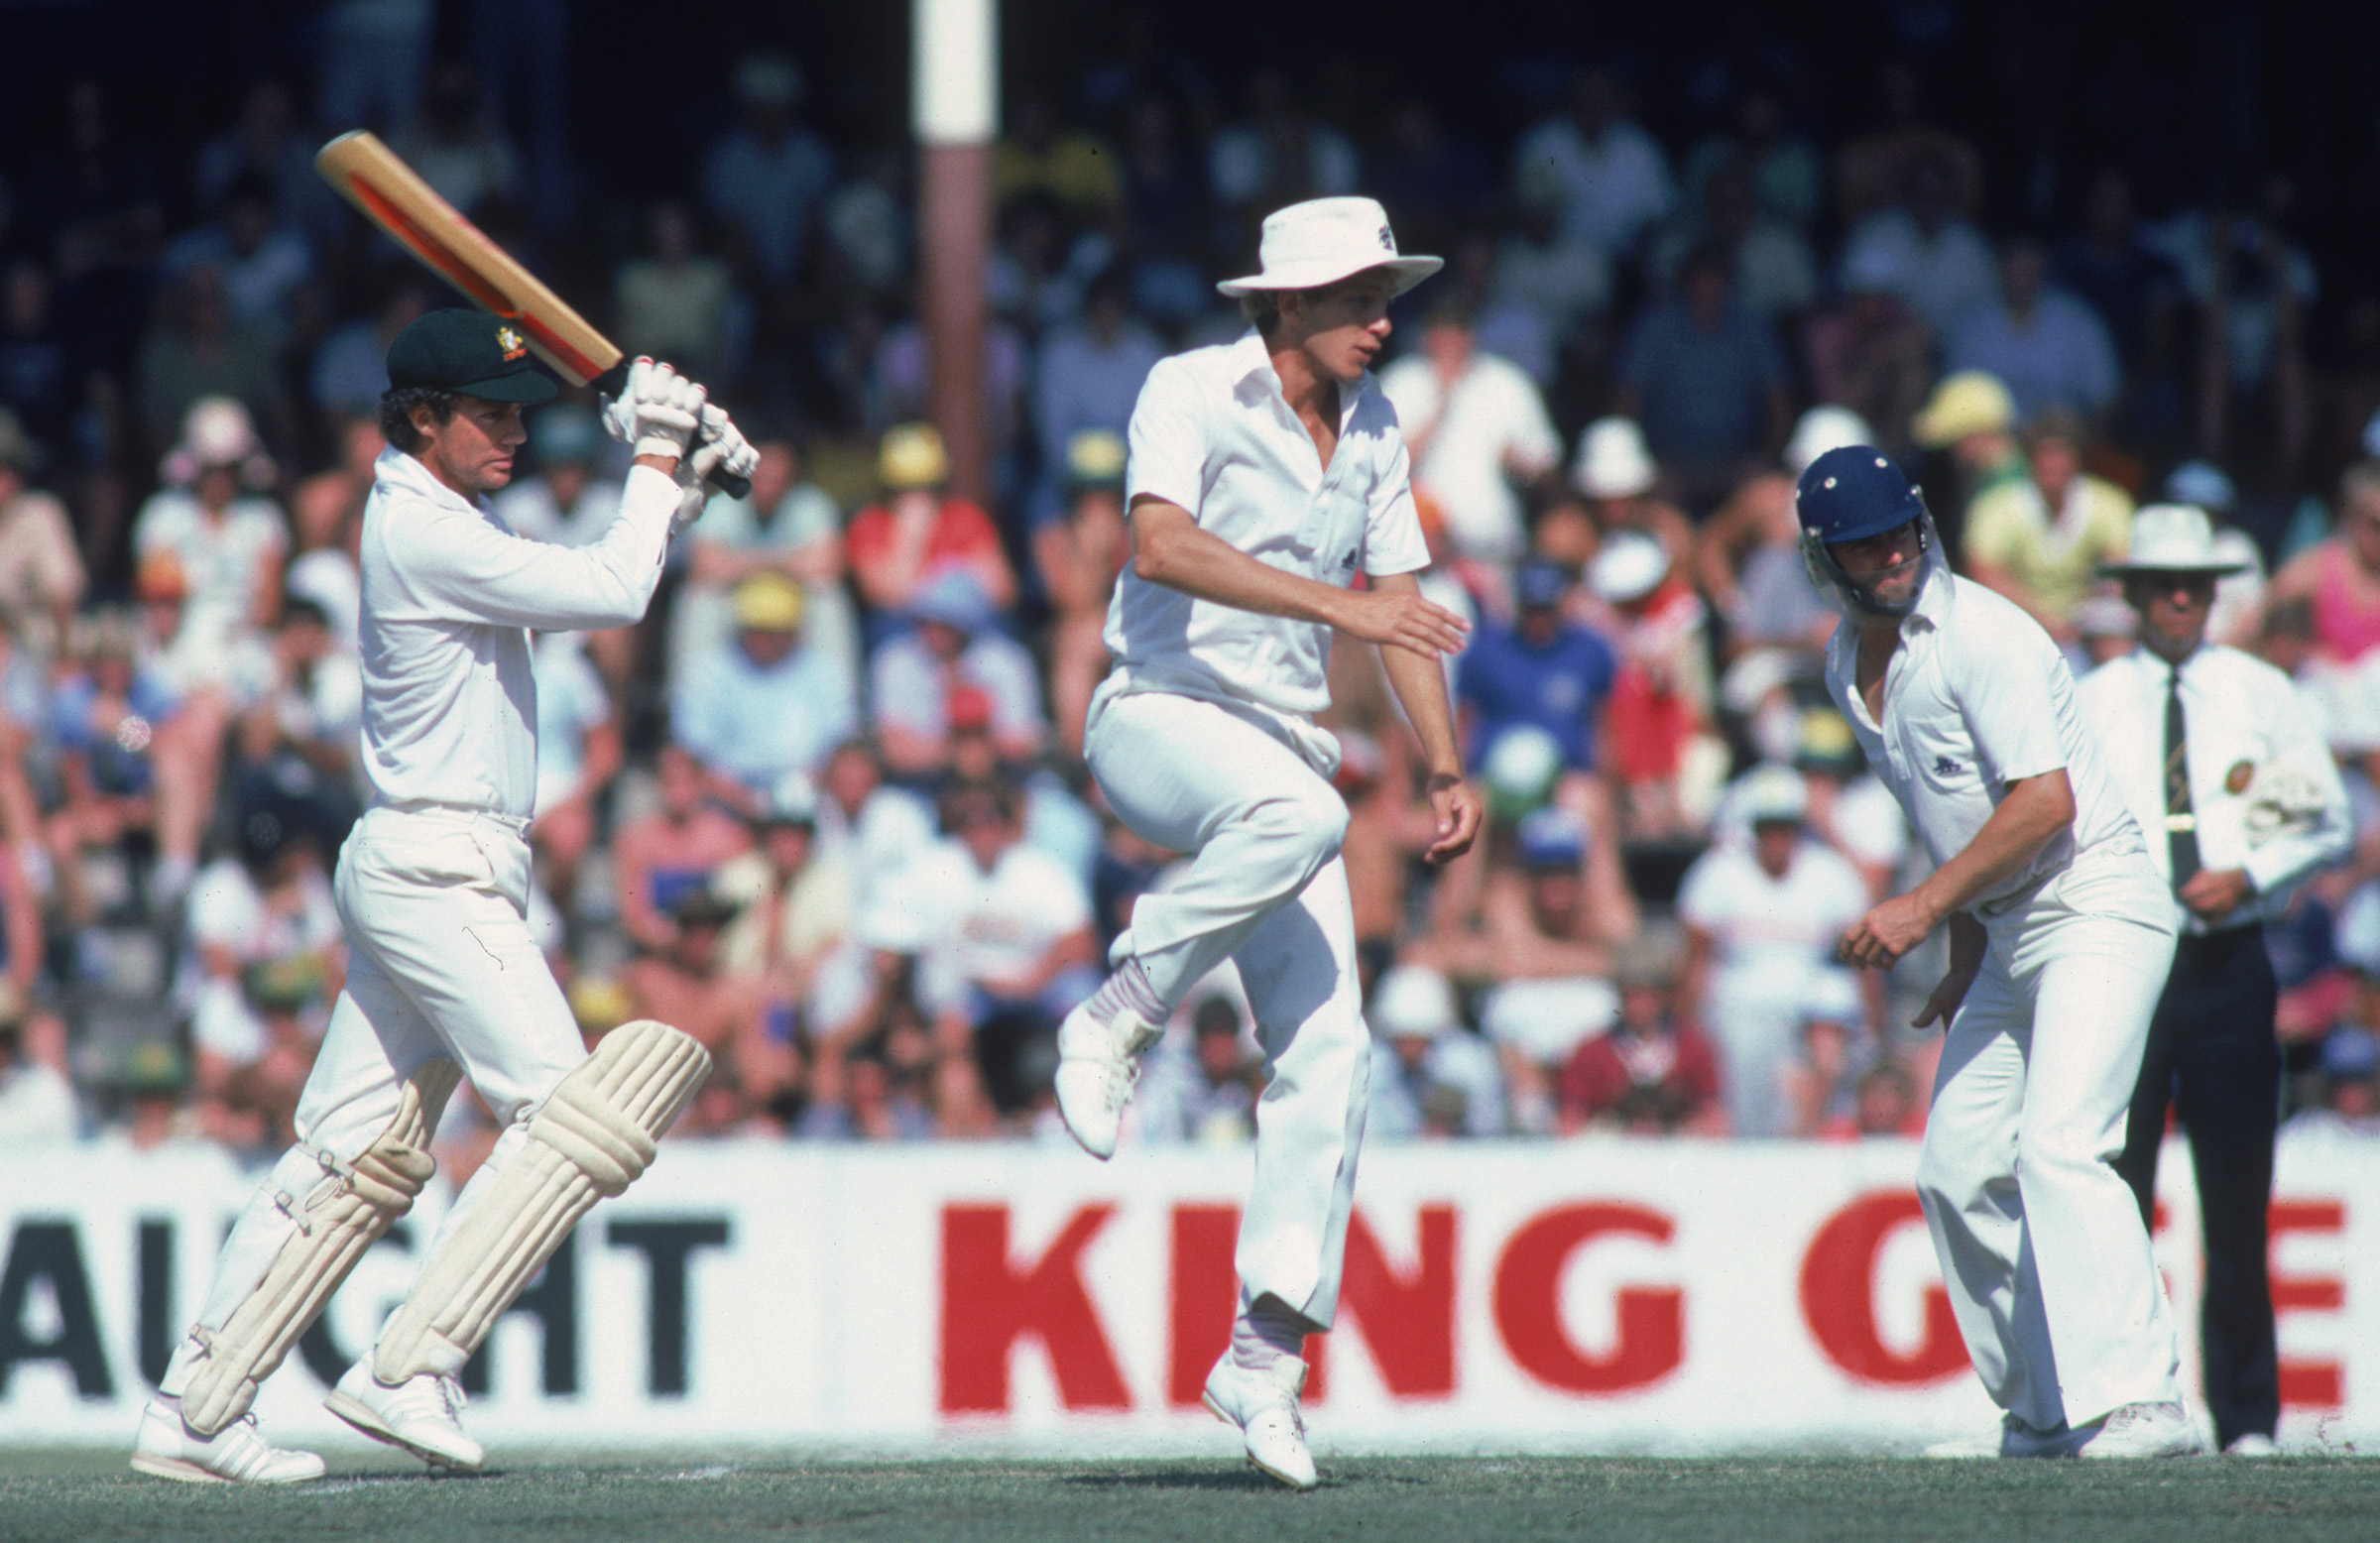 Chappell in action at the WACA in '82 // Getty